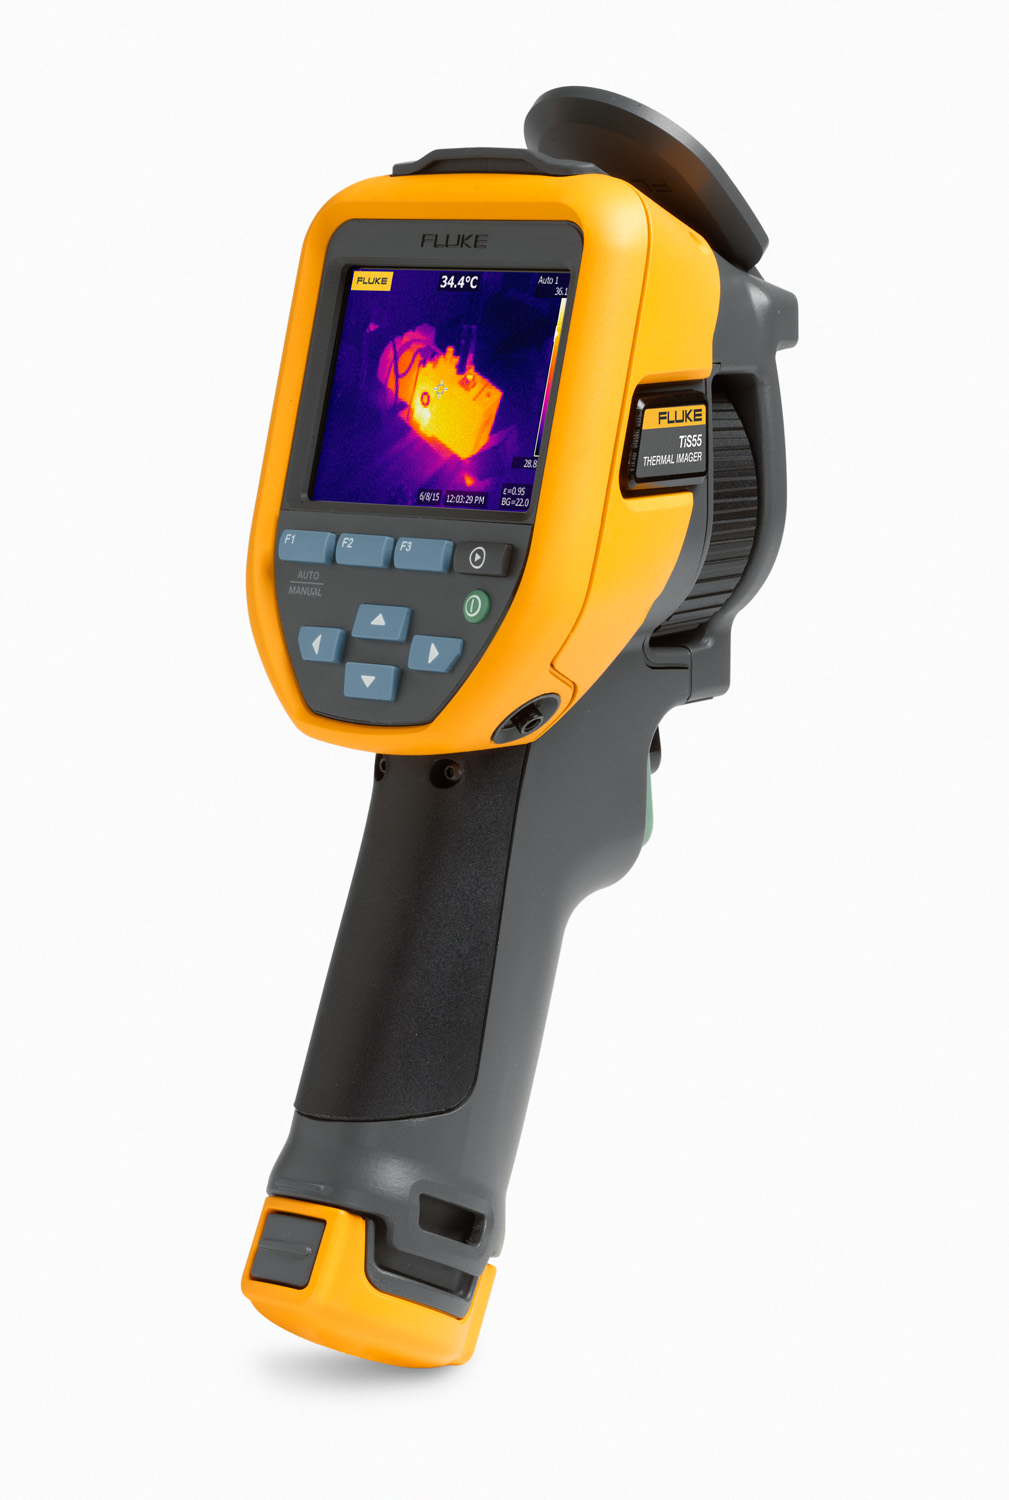 FLUTIS55 30HZ 30HZ THRML IMAGER MANUAL FOCUS 220X165, FLUKE